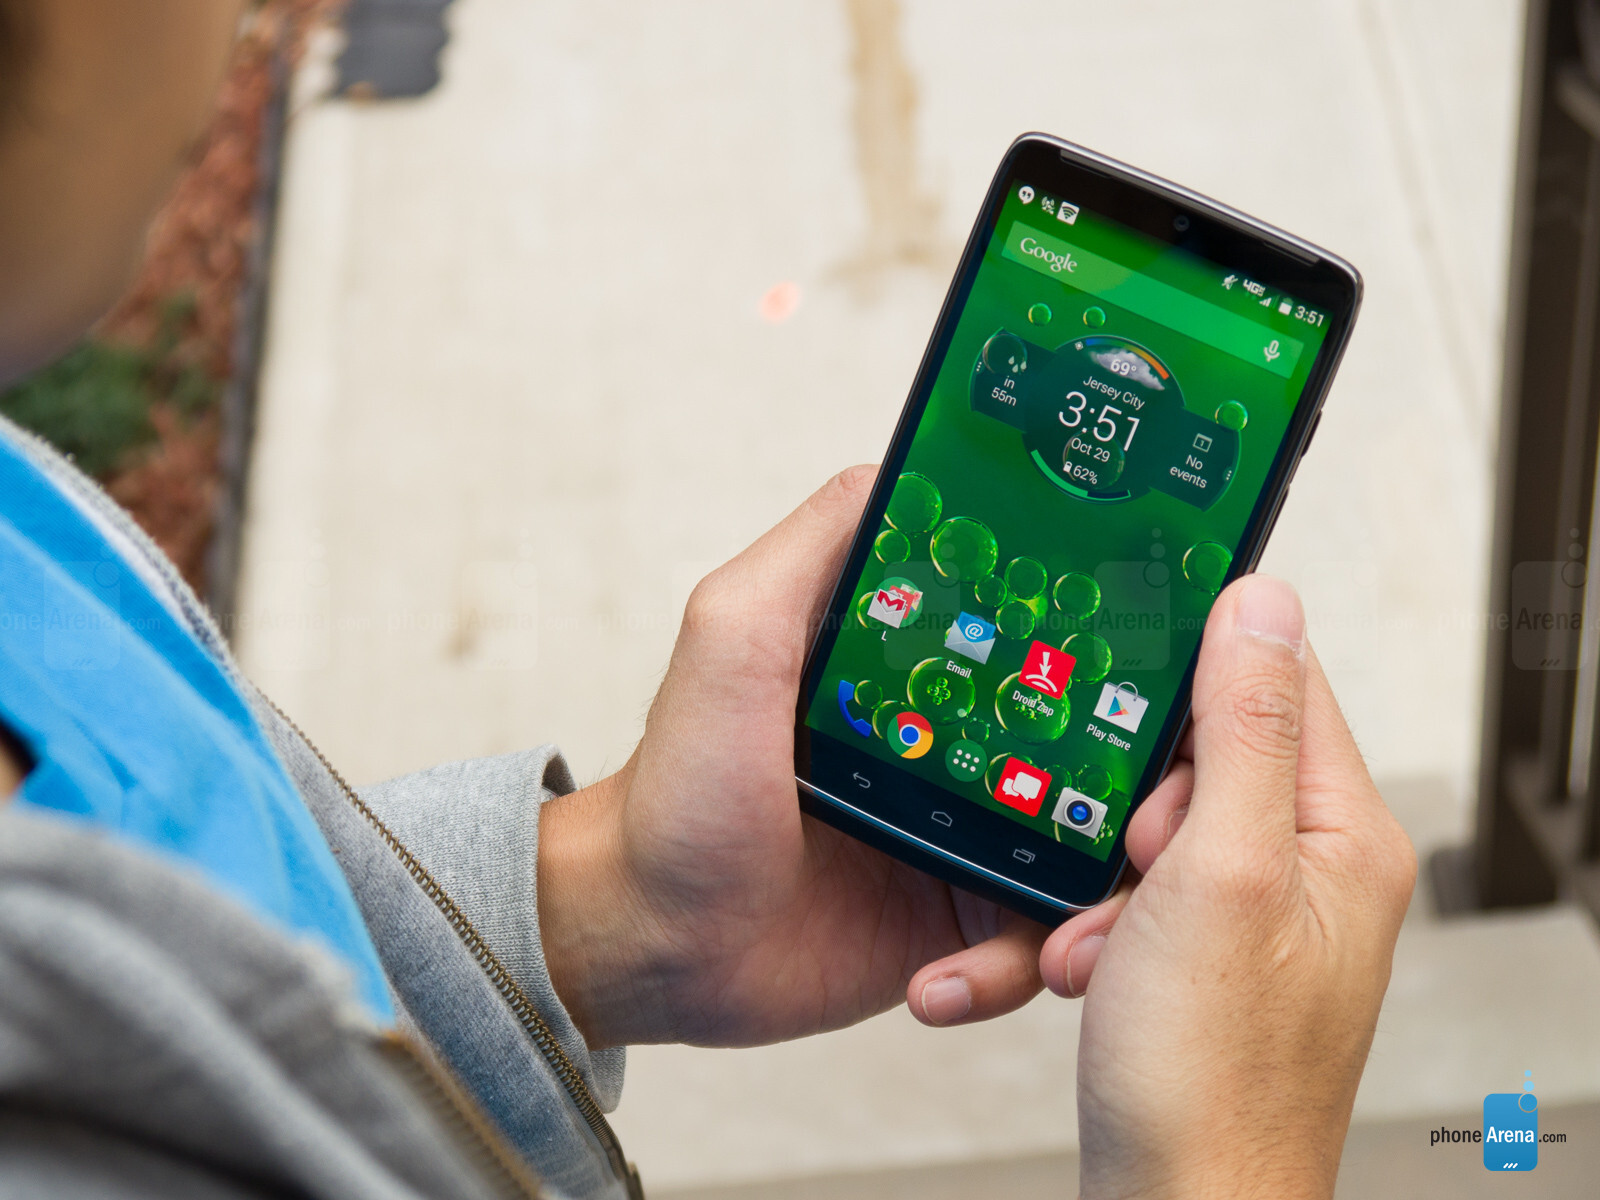 Actualizar Turbo Boost Motorola Droid Turbo Review